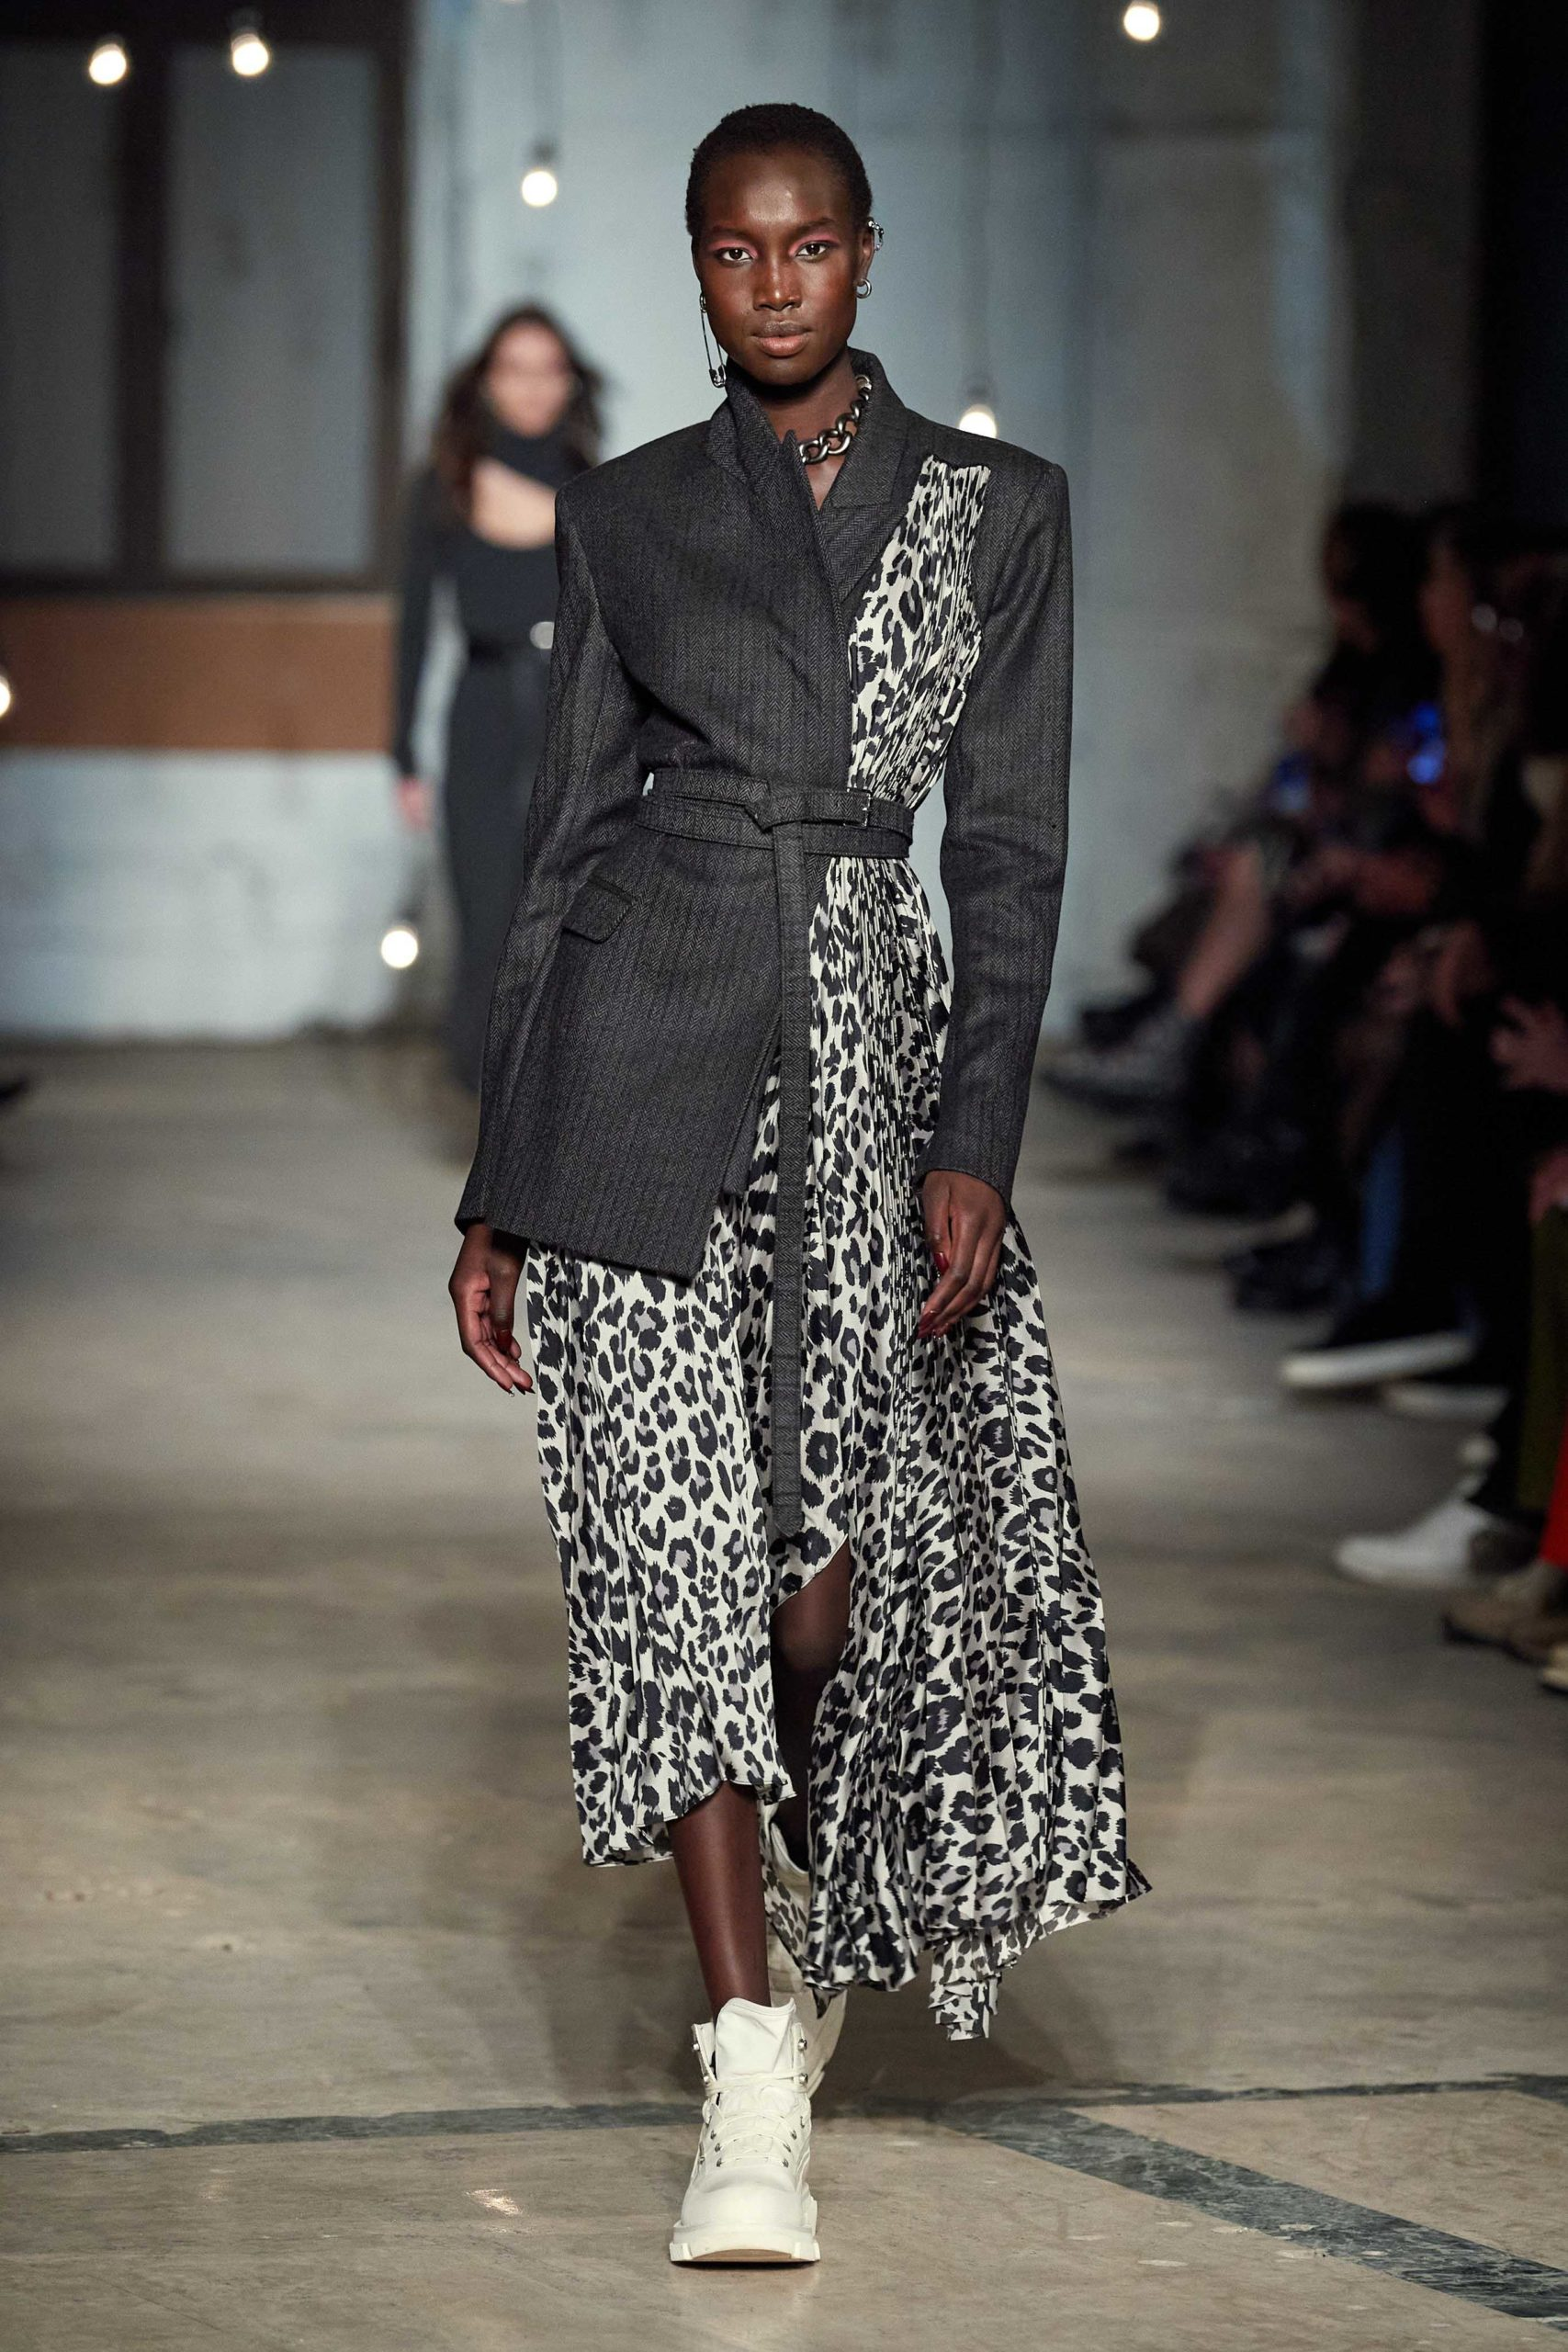 Monse Fall 2020 trends runway coverage Ready To Wear Vogue wild animal front tie